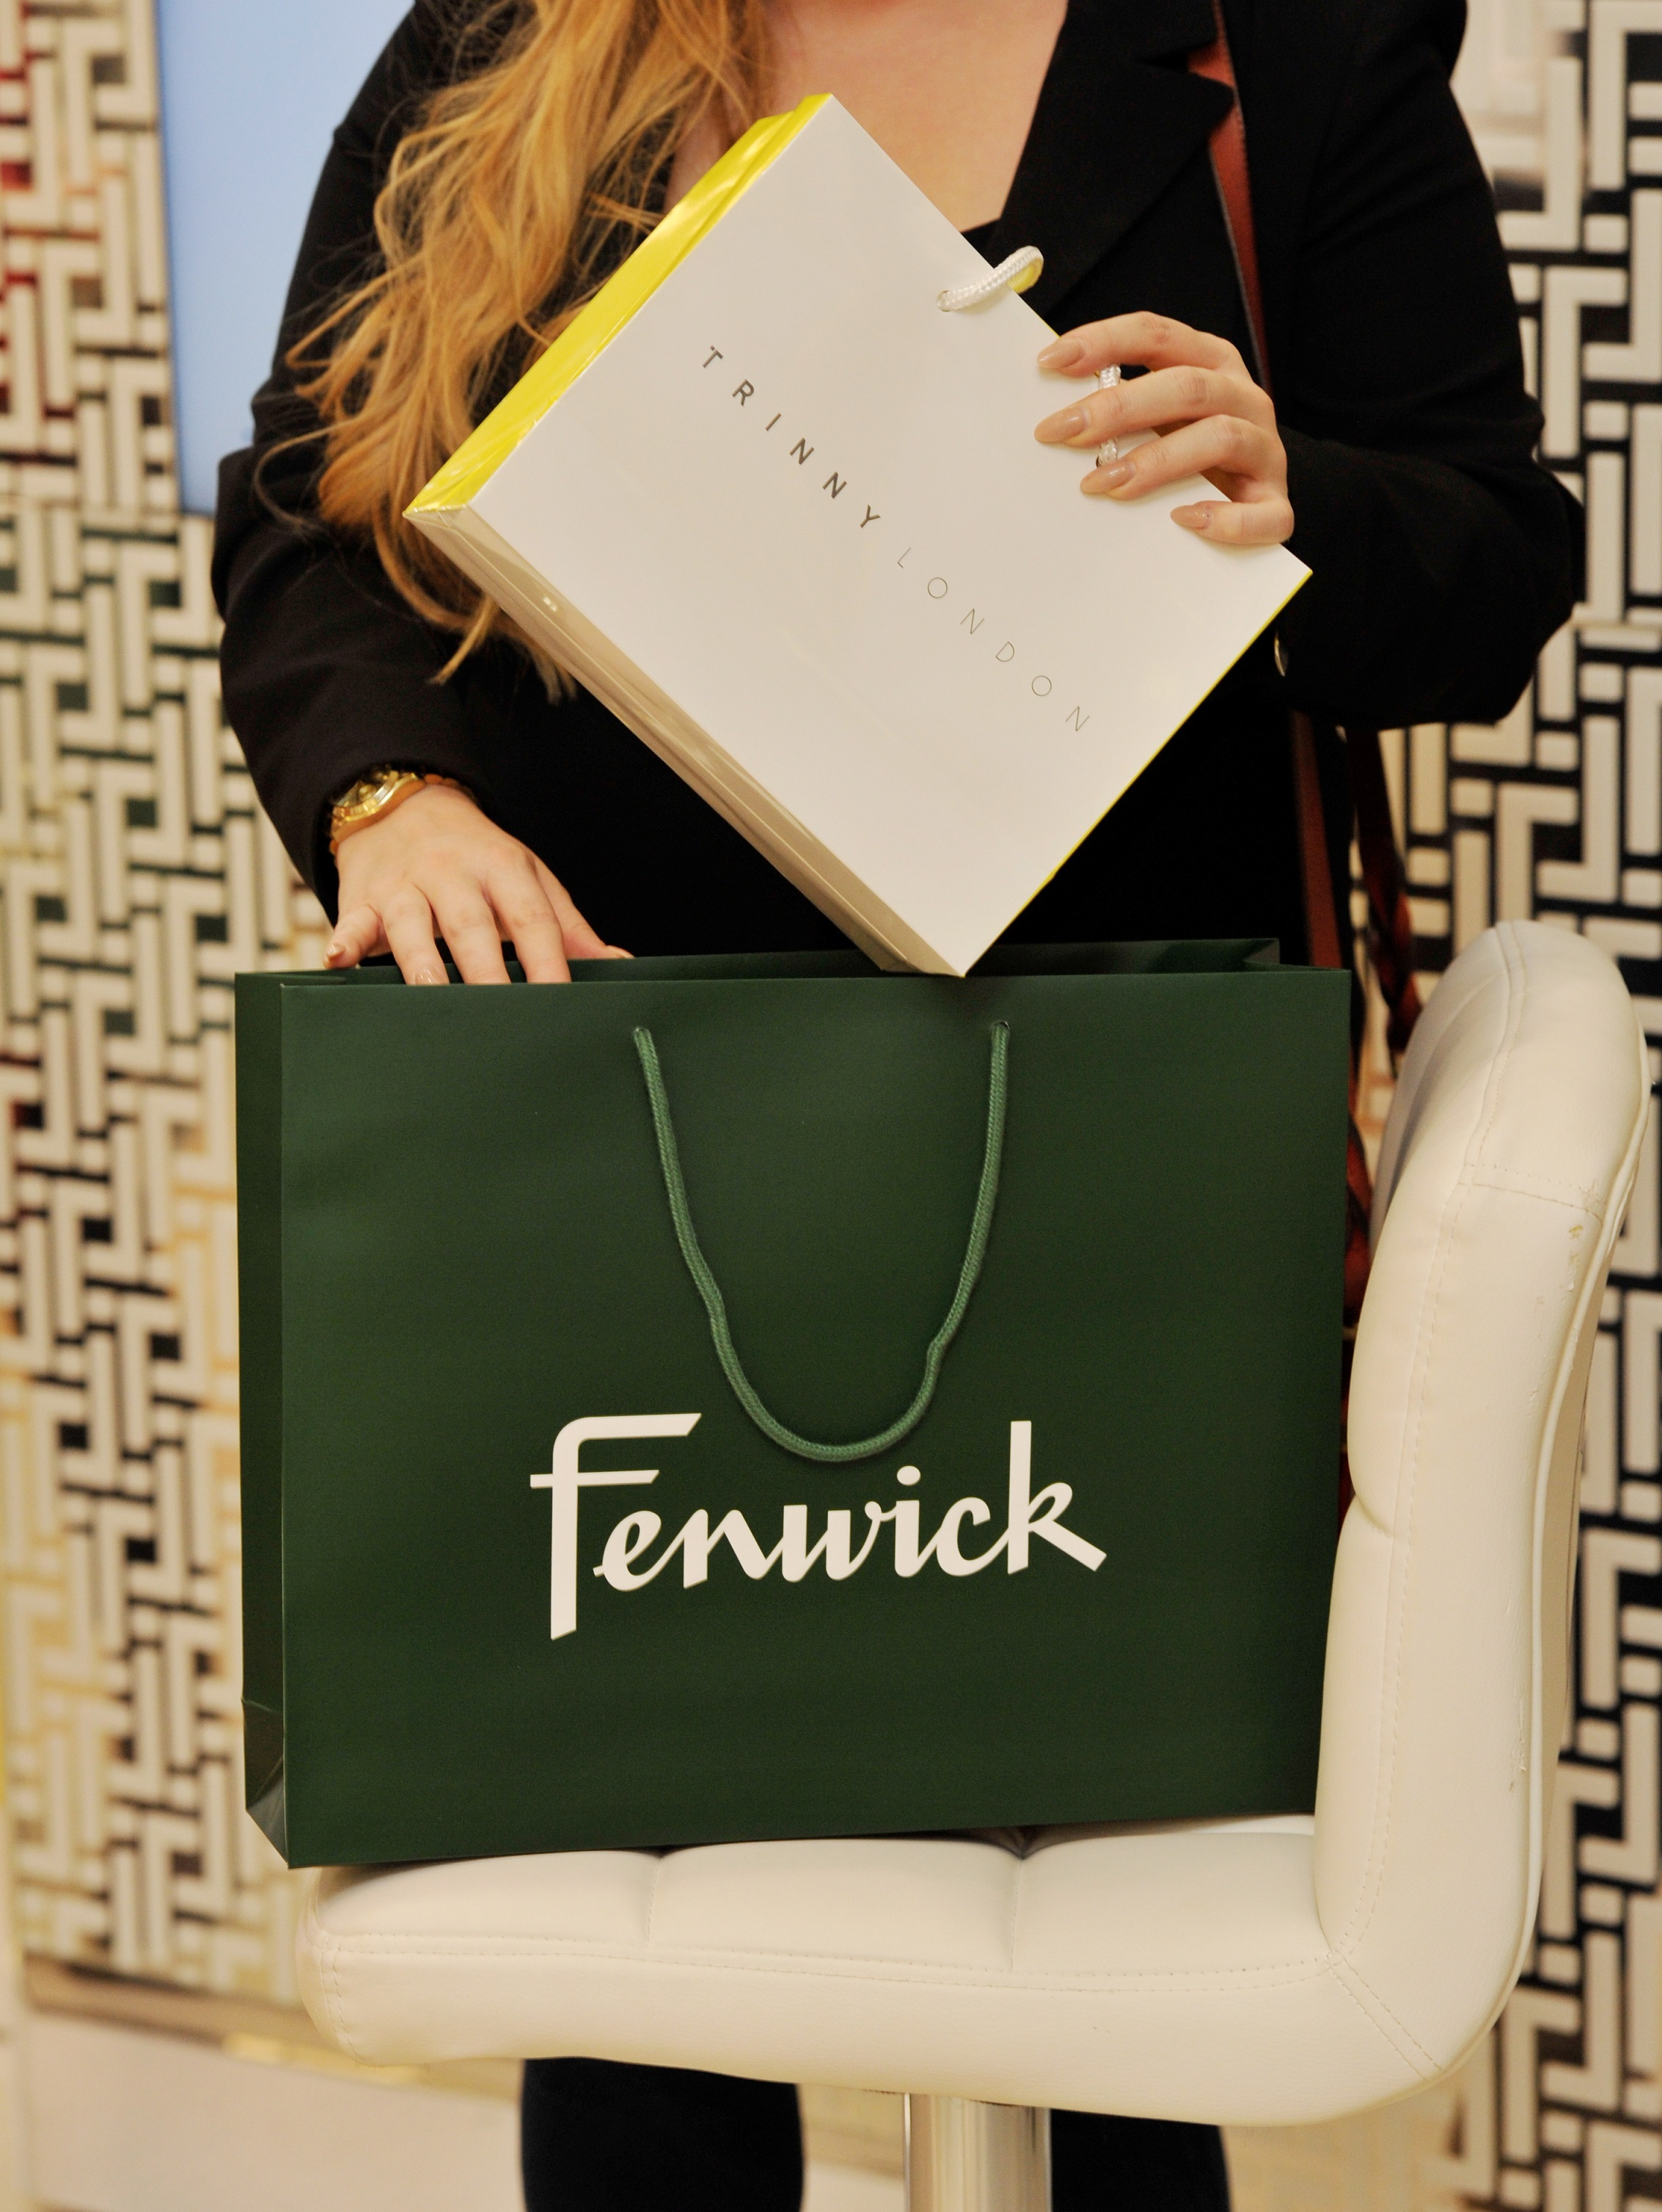 Trinny London launches in Fenwick Newcastle 5